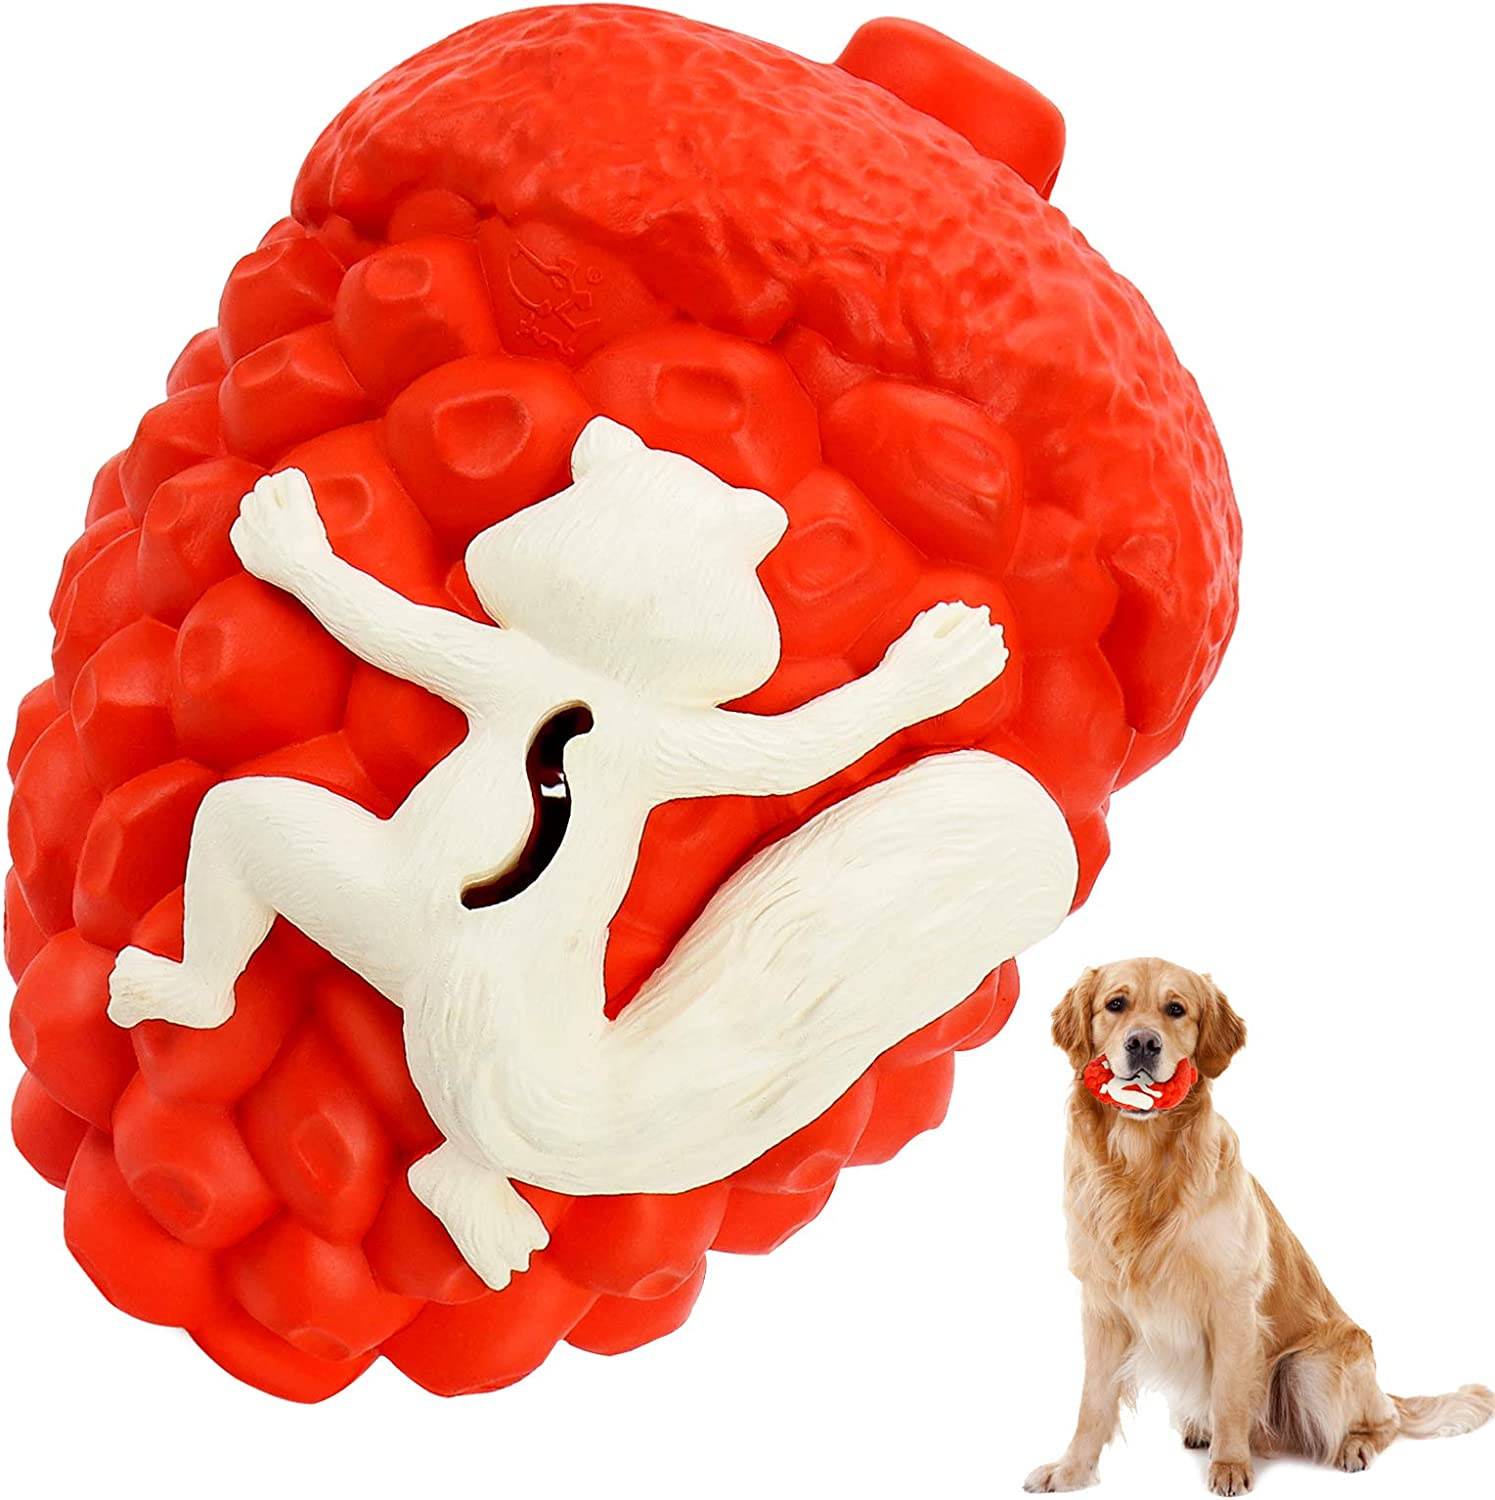 Dog Toys for Aggressive Chewers Large Breed, Indestructible Dog Toys for Large Medium Dogs, Tough Dog Dental Chews Toys, 100% Natural Rubber Food Dispensing Dog Puzzle Toys